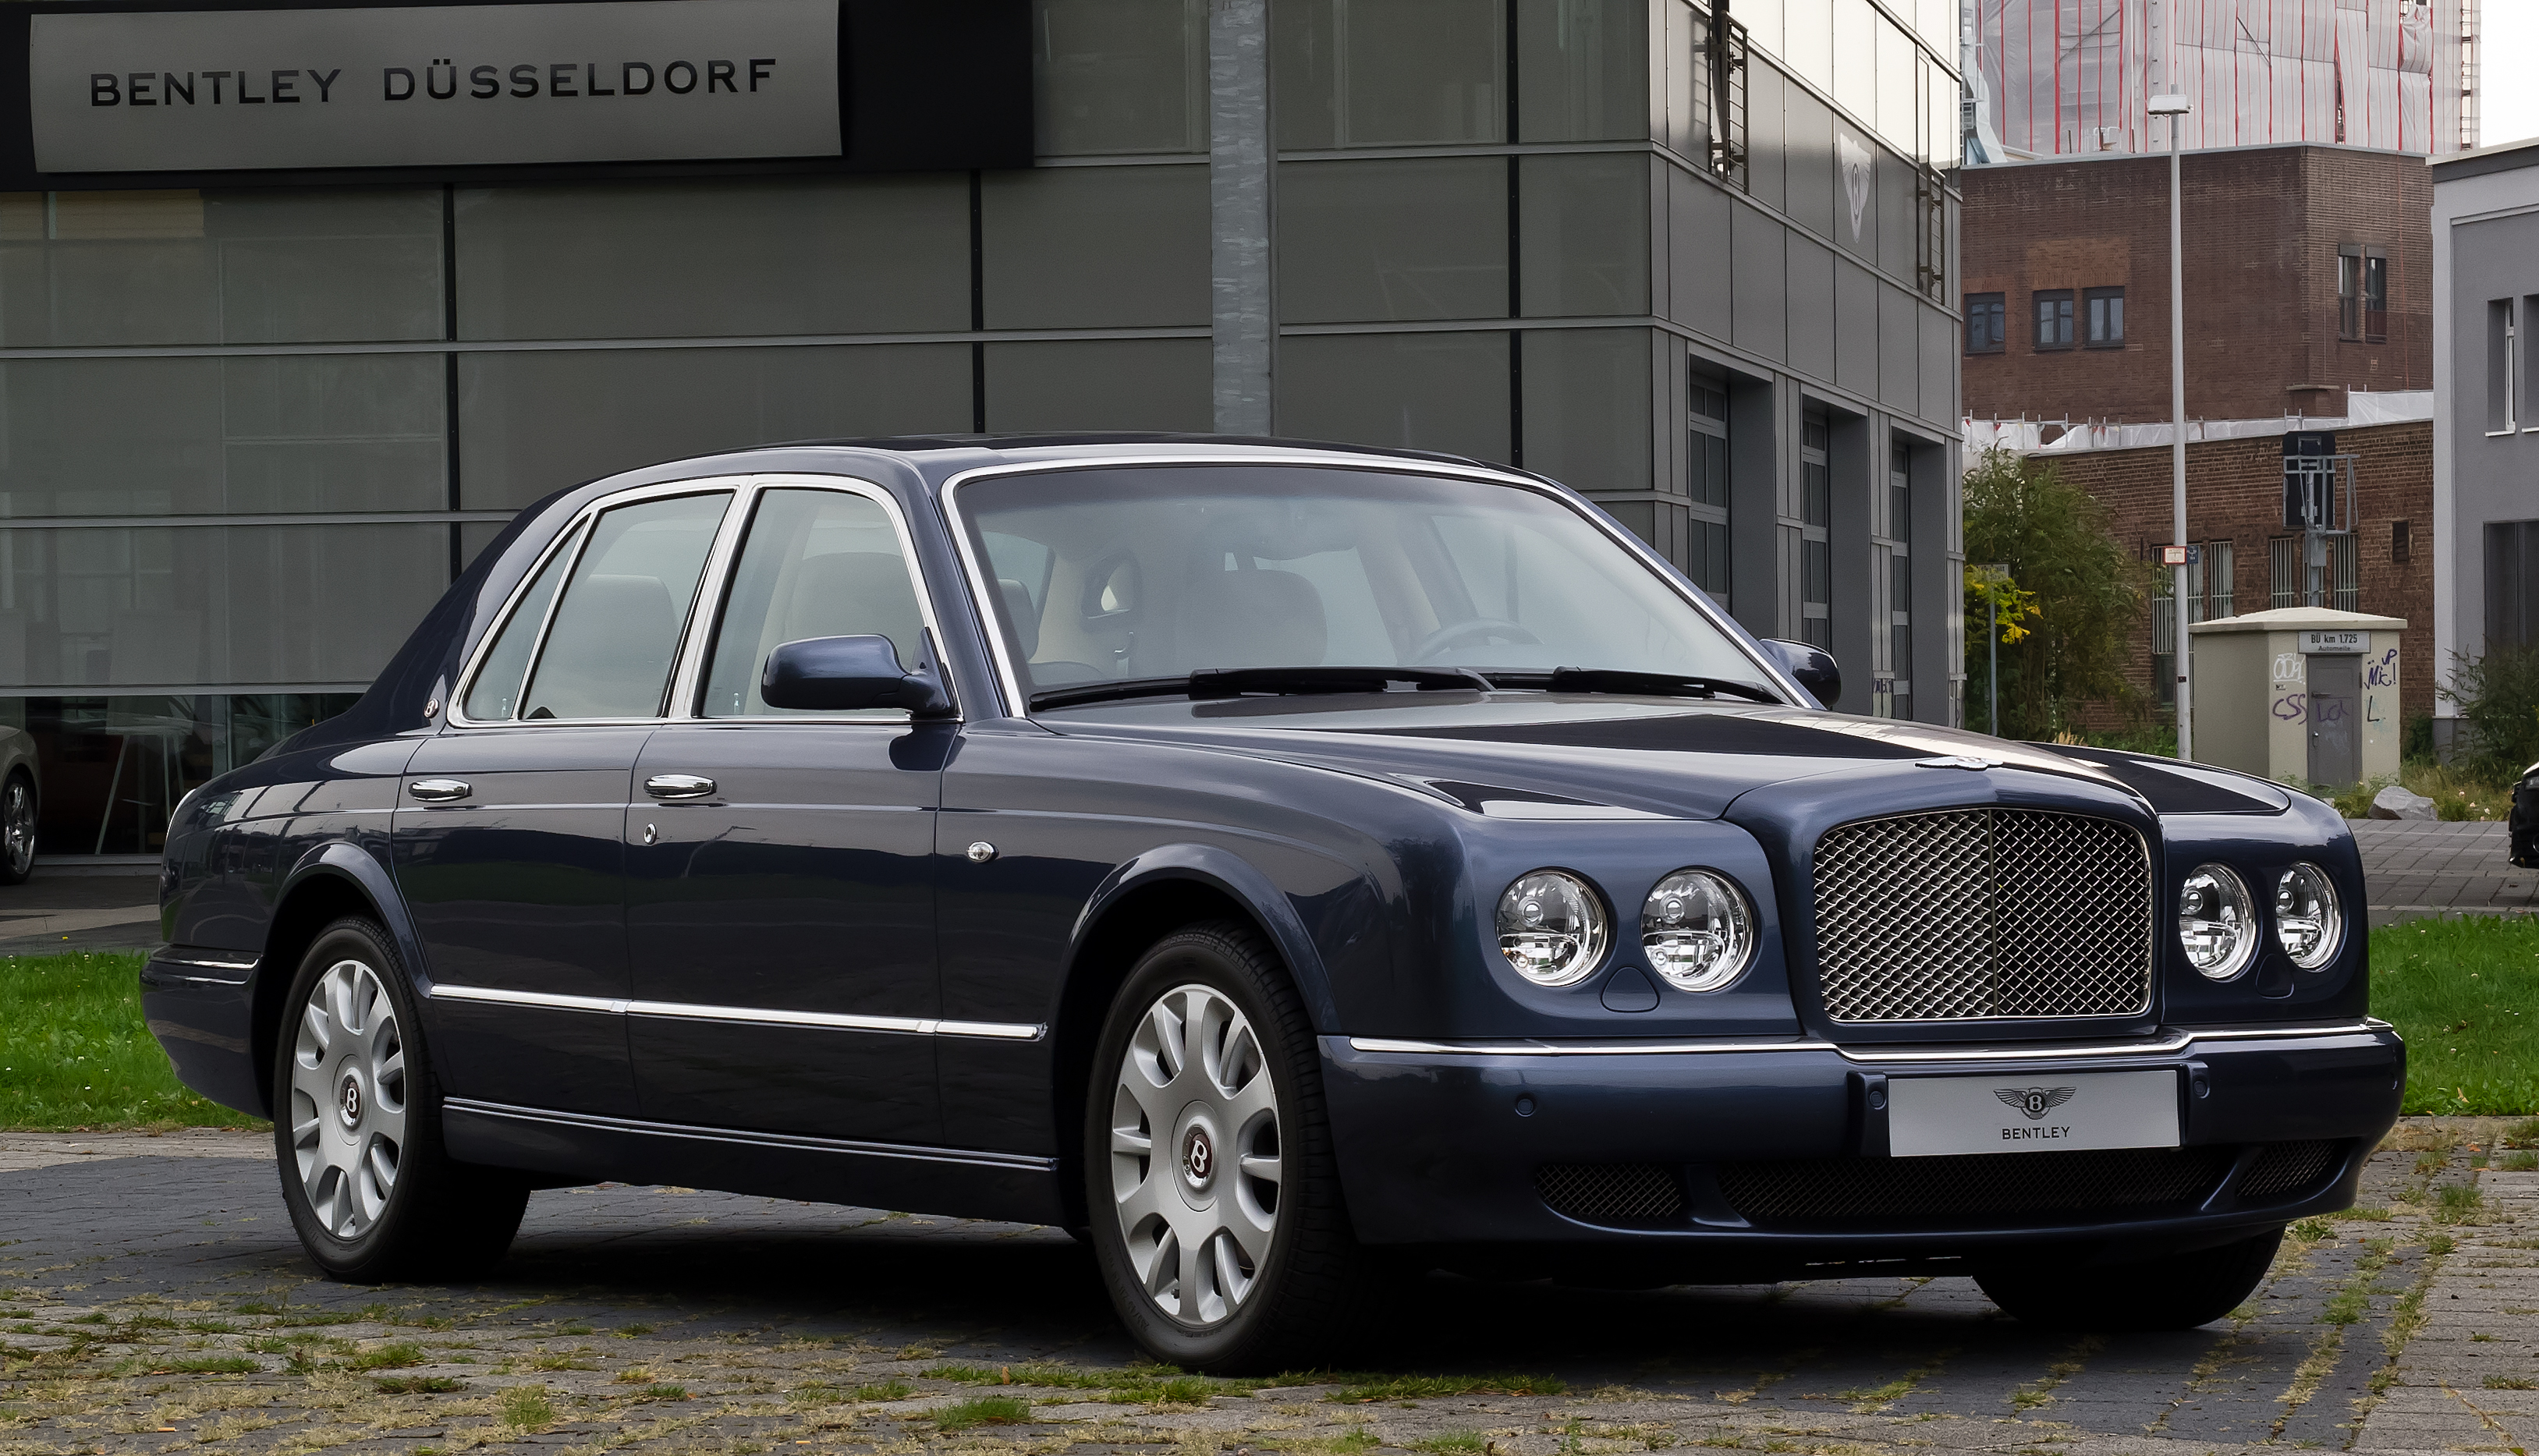 arnage stock used r il chicago bentley l htm for near c sale